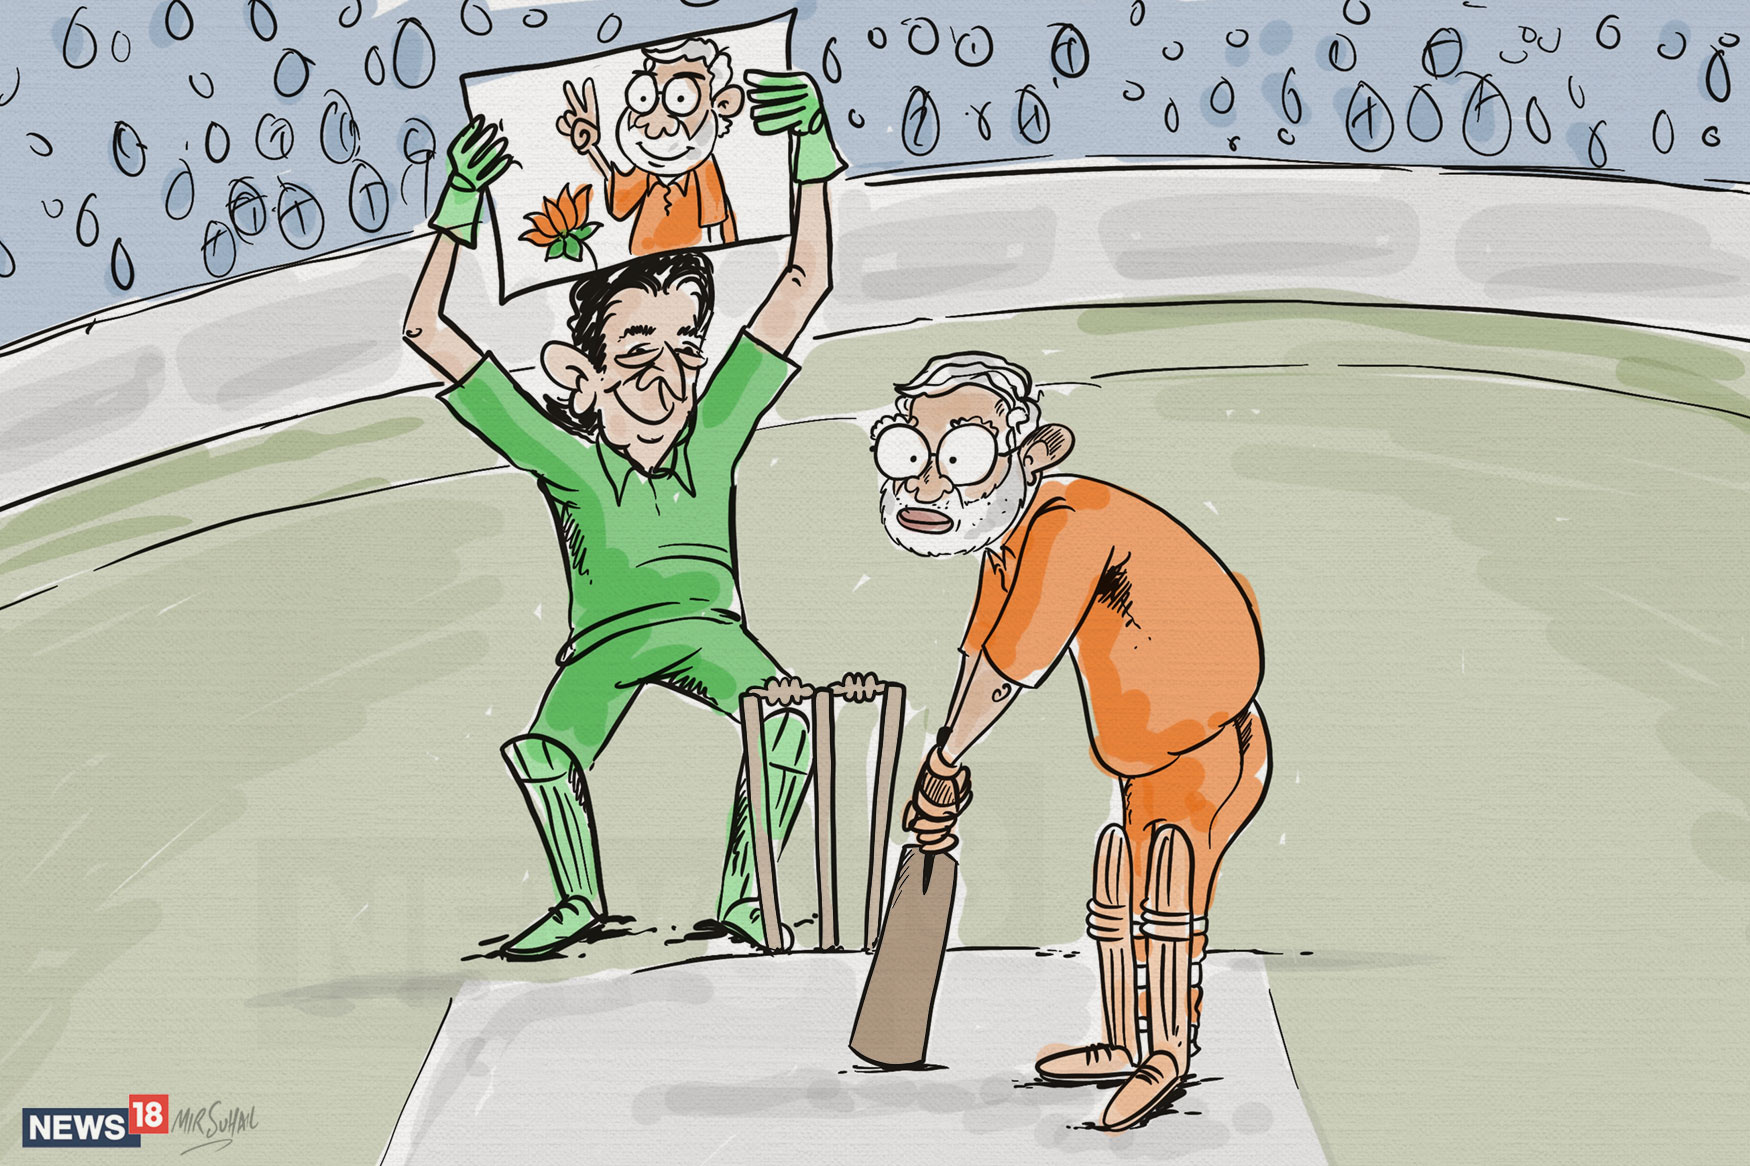 Pak-Allied-With-Modi-Cartoon